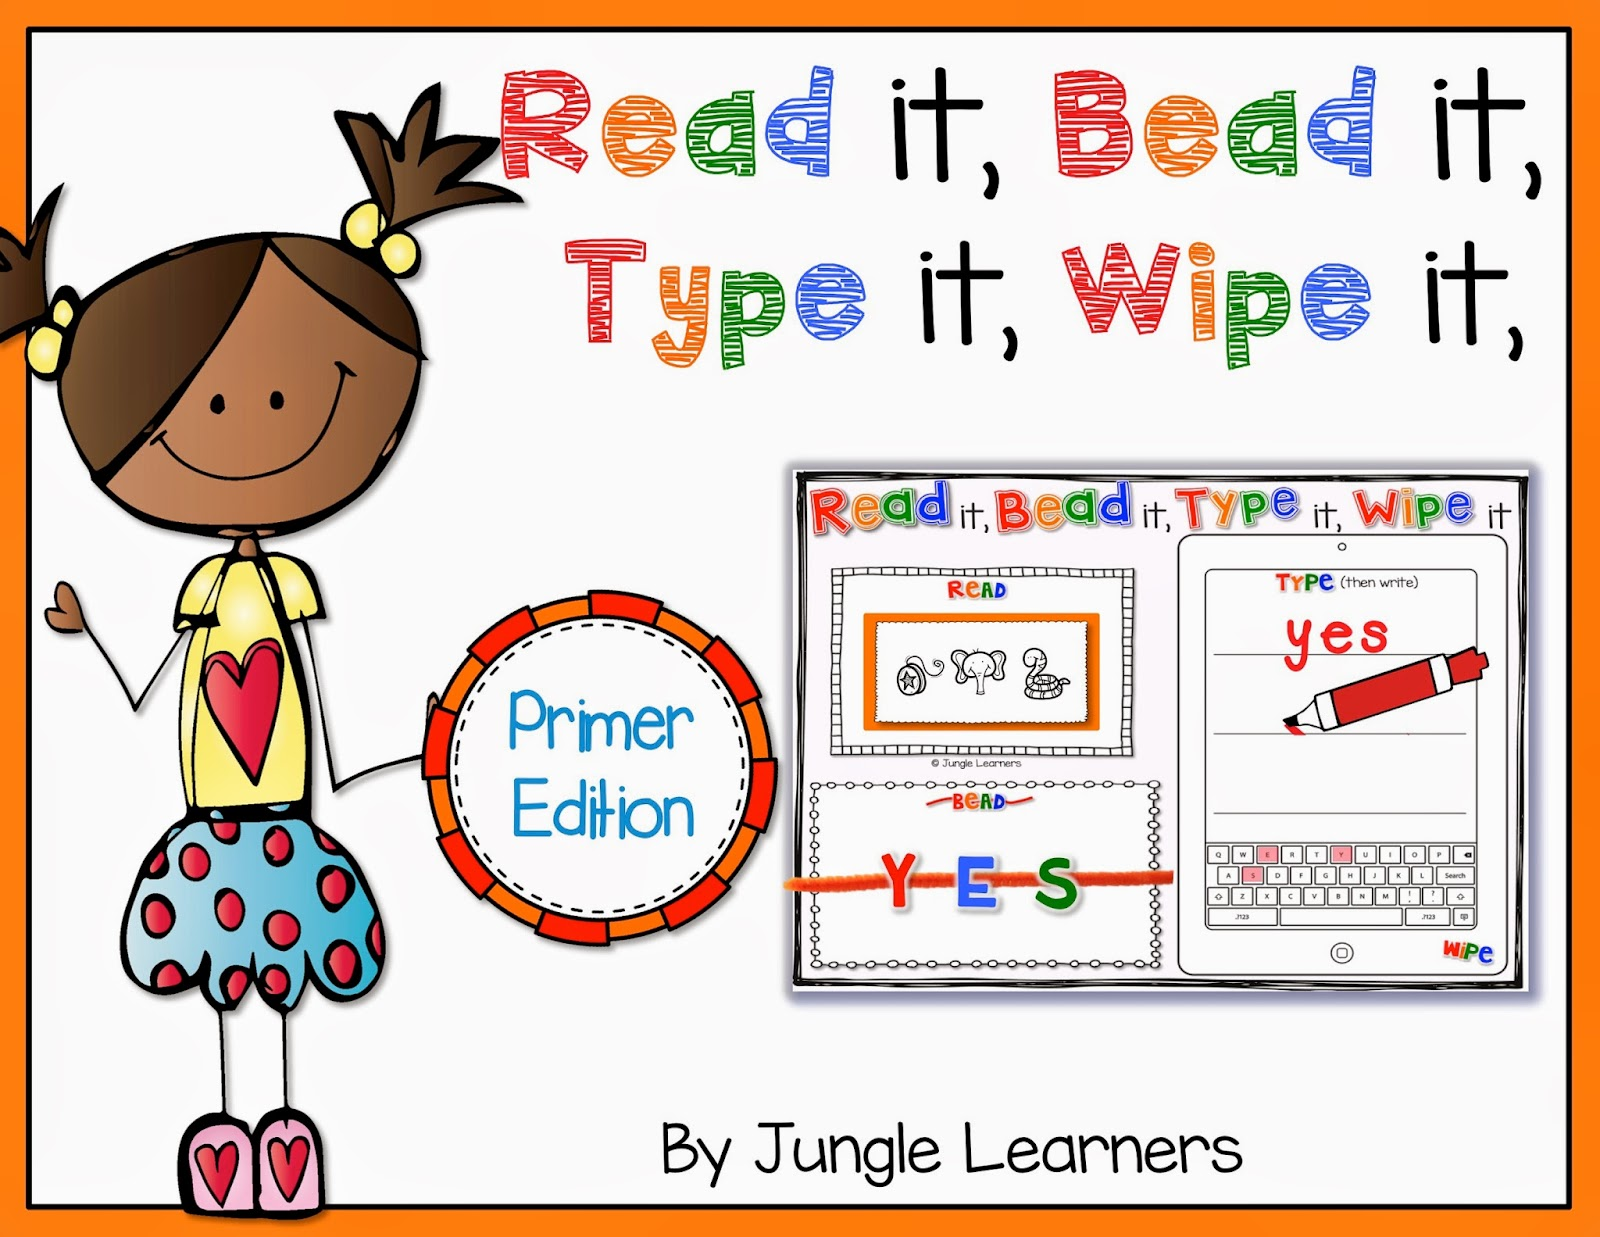 Read it, Bead it, Type it, Wipe it [Primer Edition]